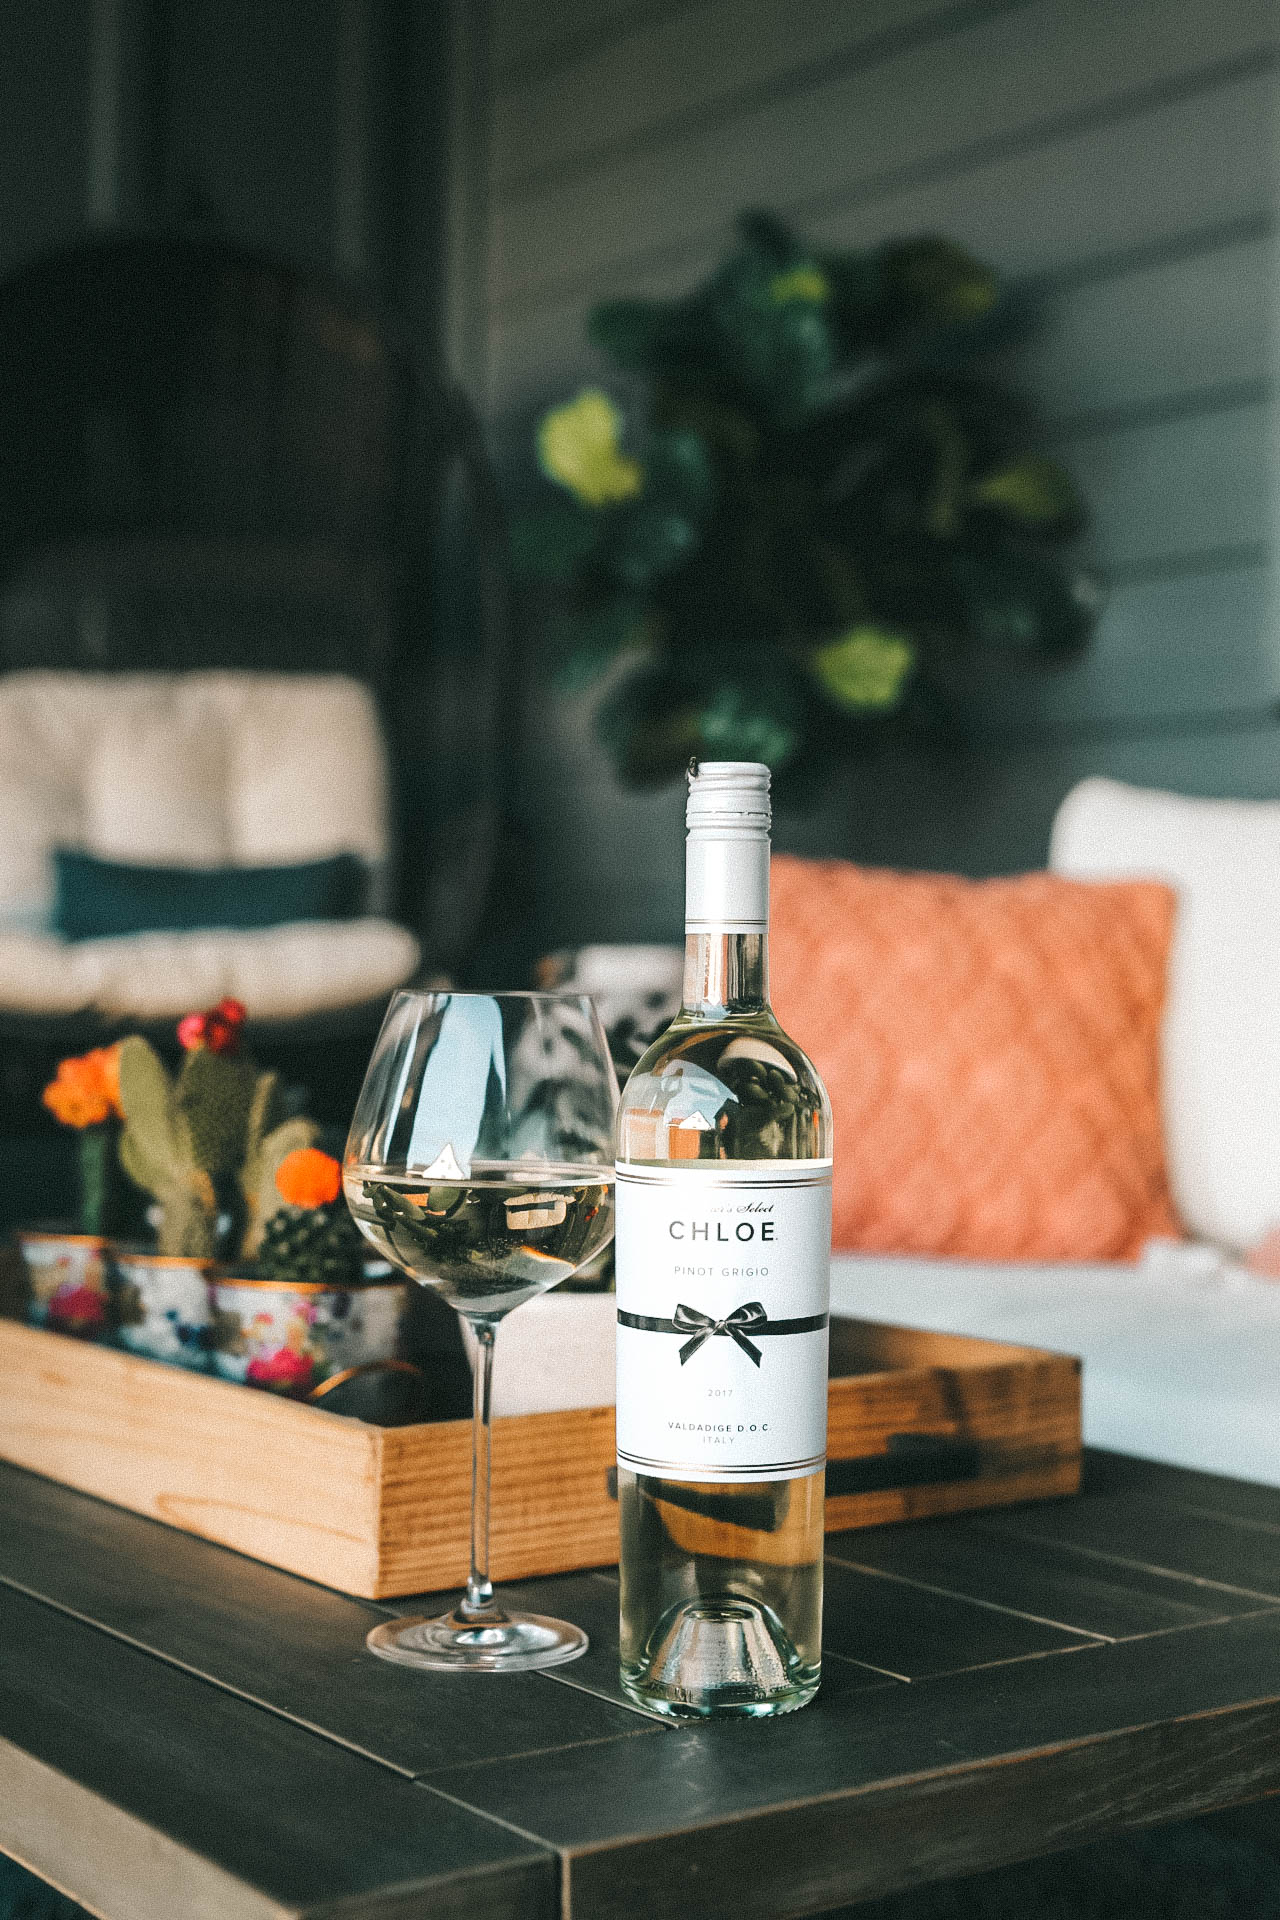 Celebrating Women in Film with Chloe Wine Collection by popular Austin life and style blog, Dressed to Kill: image of a bottle of Chloe pinot grigio wine on a wooden coffee table with a wine glass resting next to it.